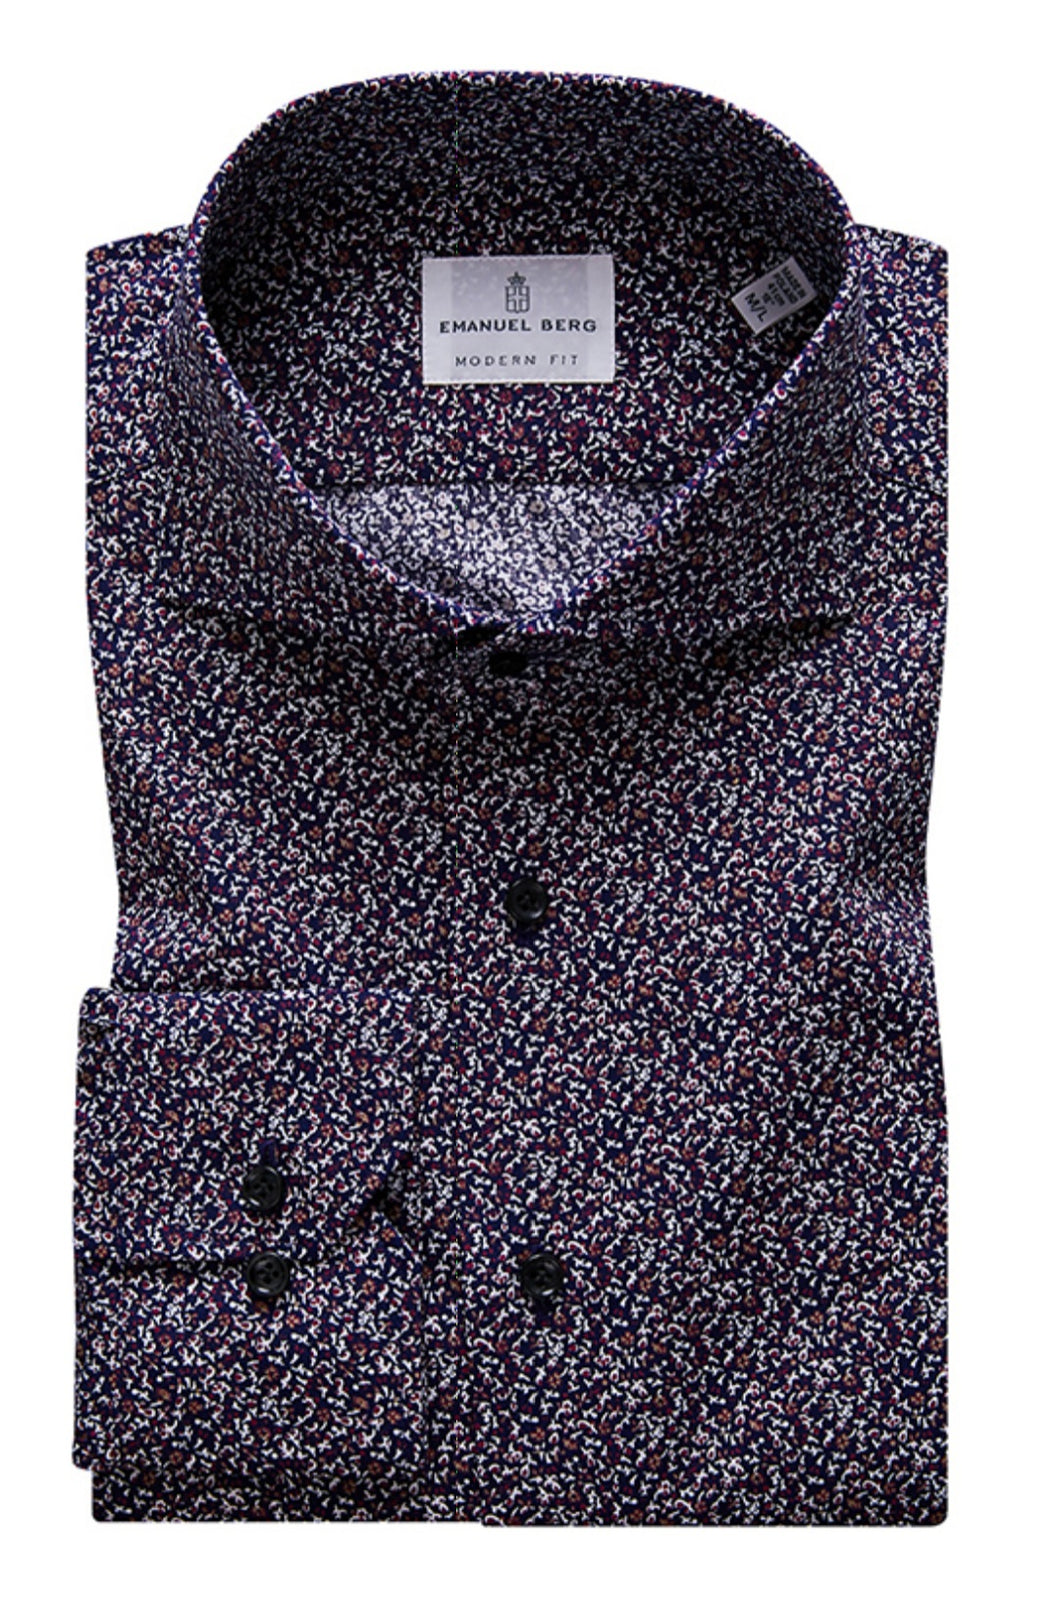 EMANUEL BERG- Navy/Red Floral Shirt